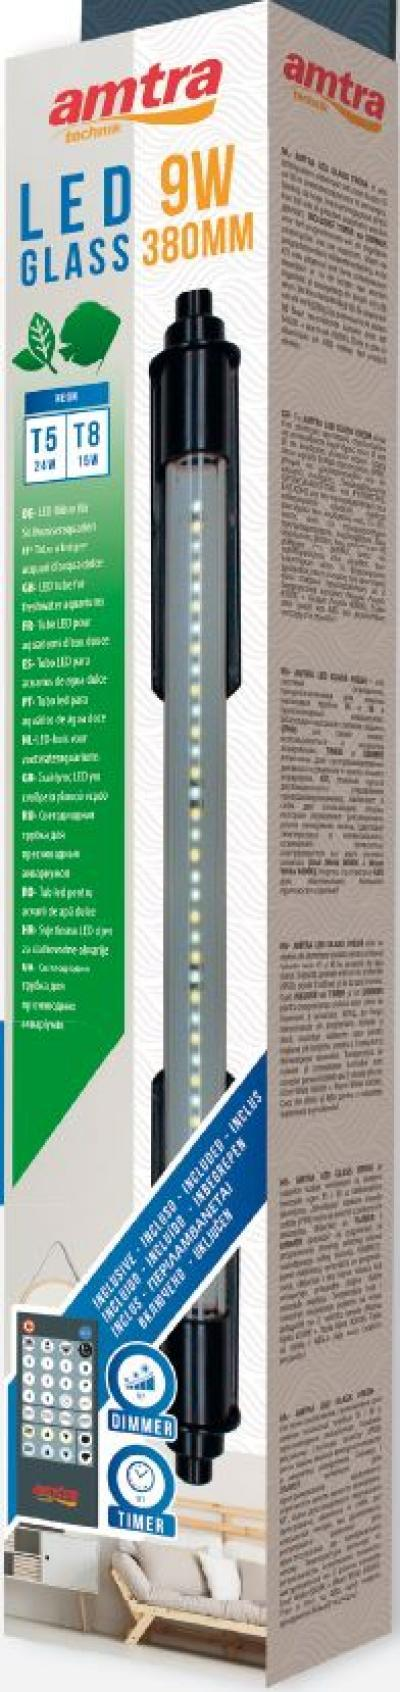 AMTRA lempa LED GLASS FRESH 1080mm 28W